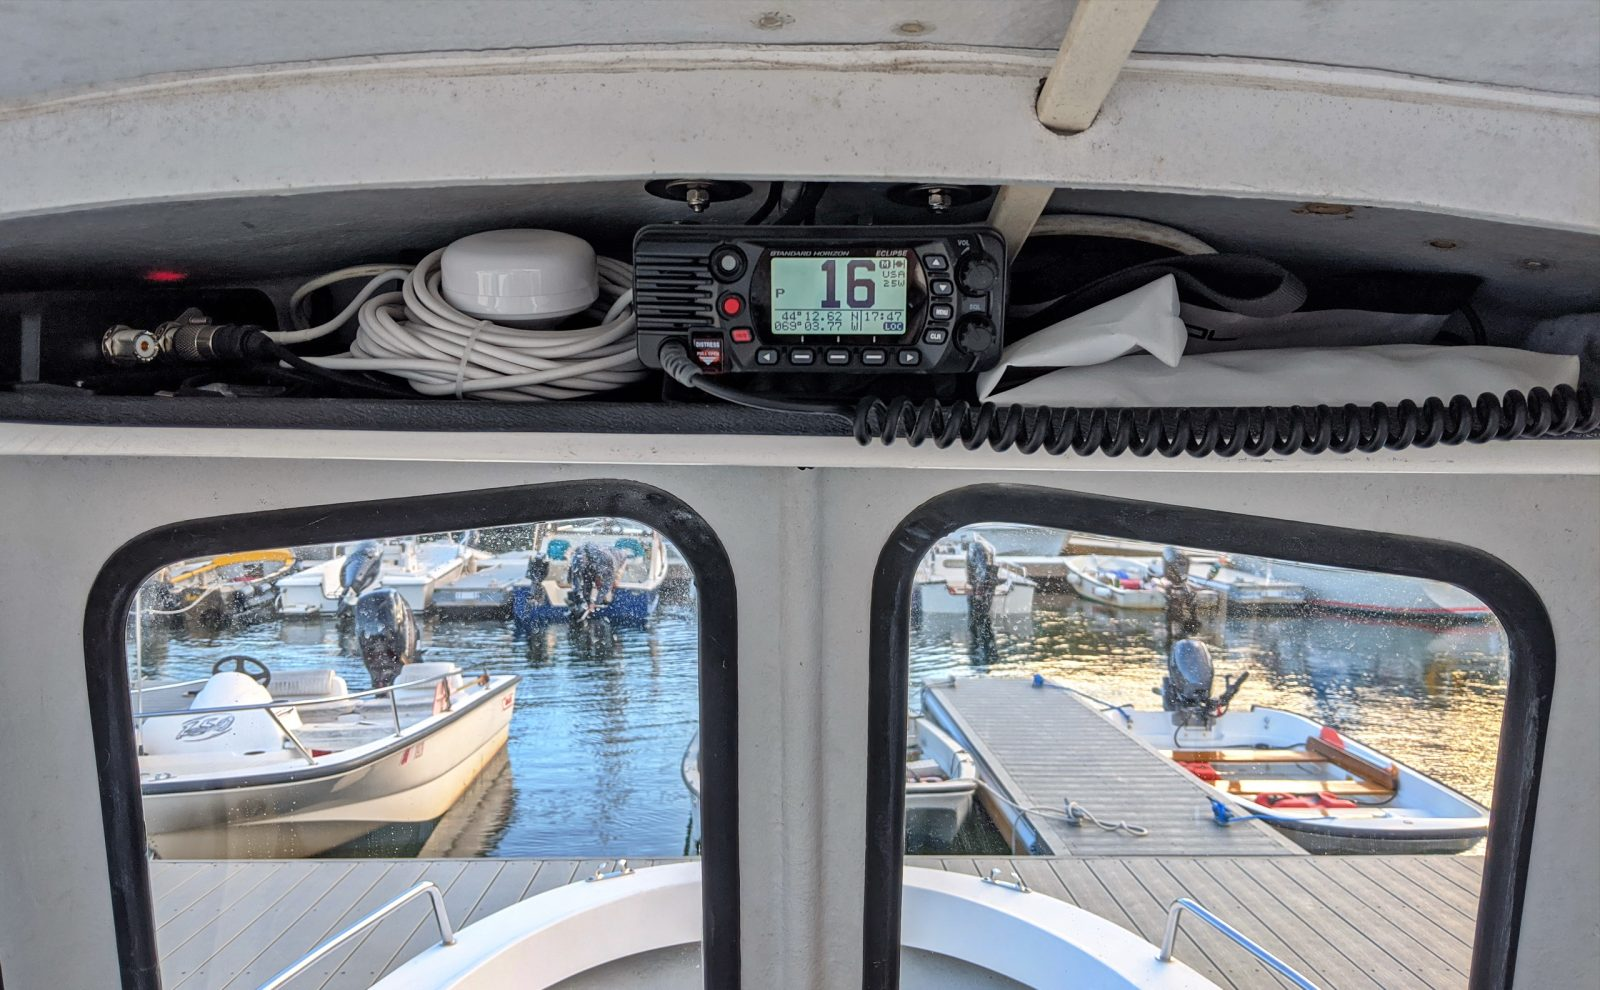 The overhead shelf is stuffed with cables, AIS & VHF for a reason